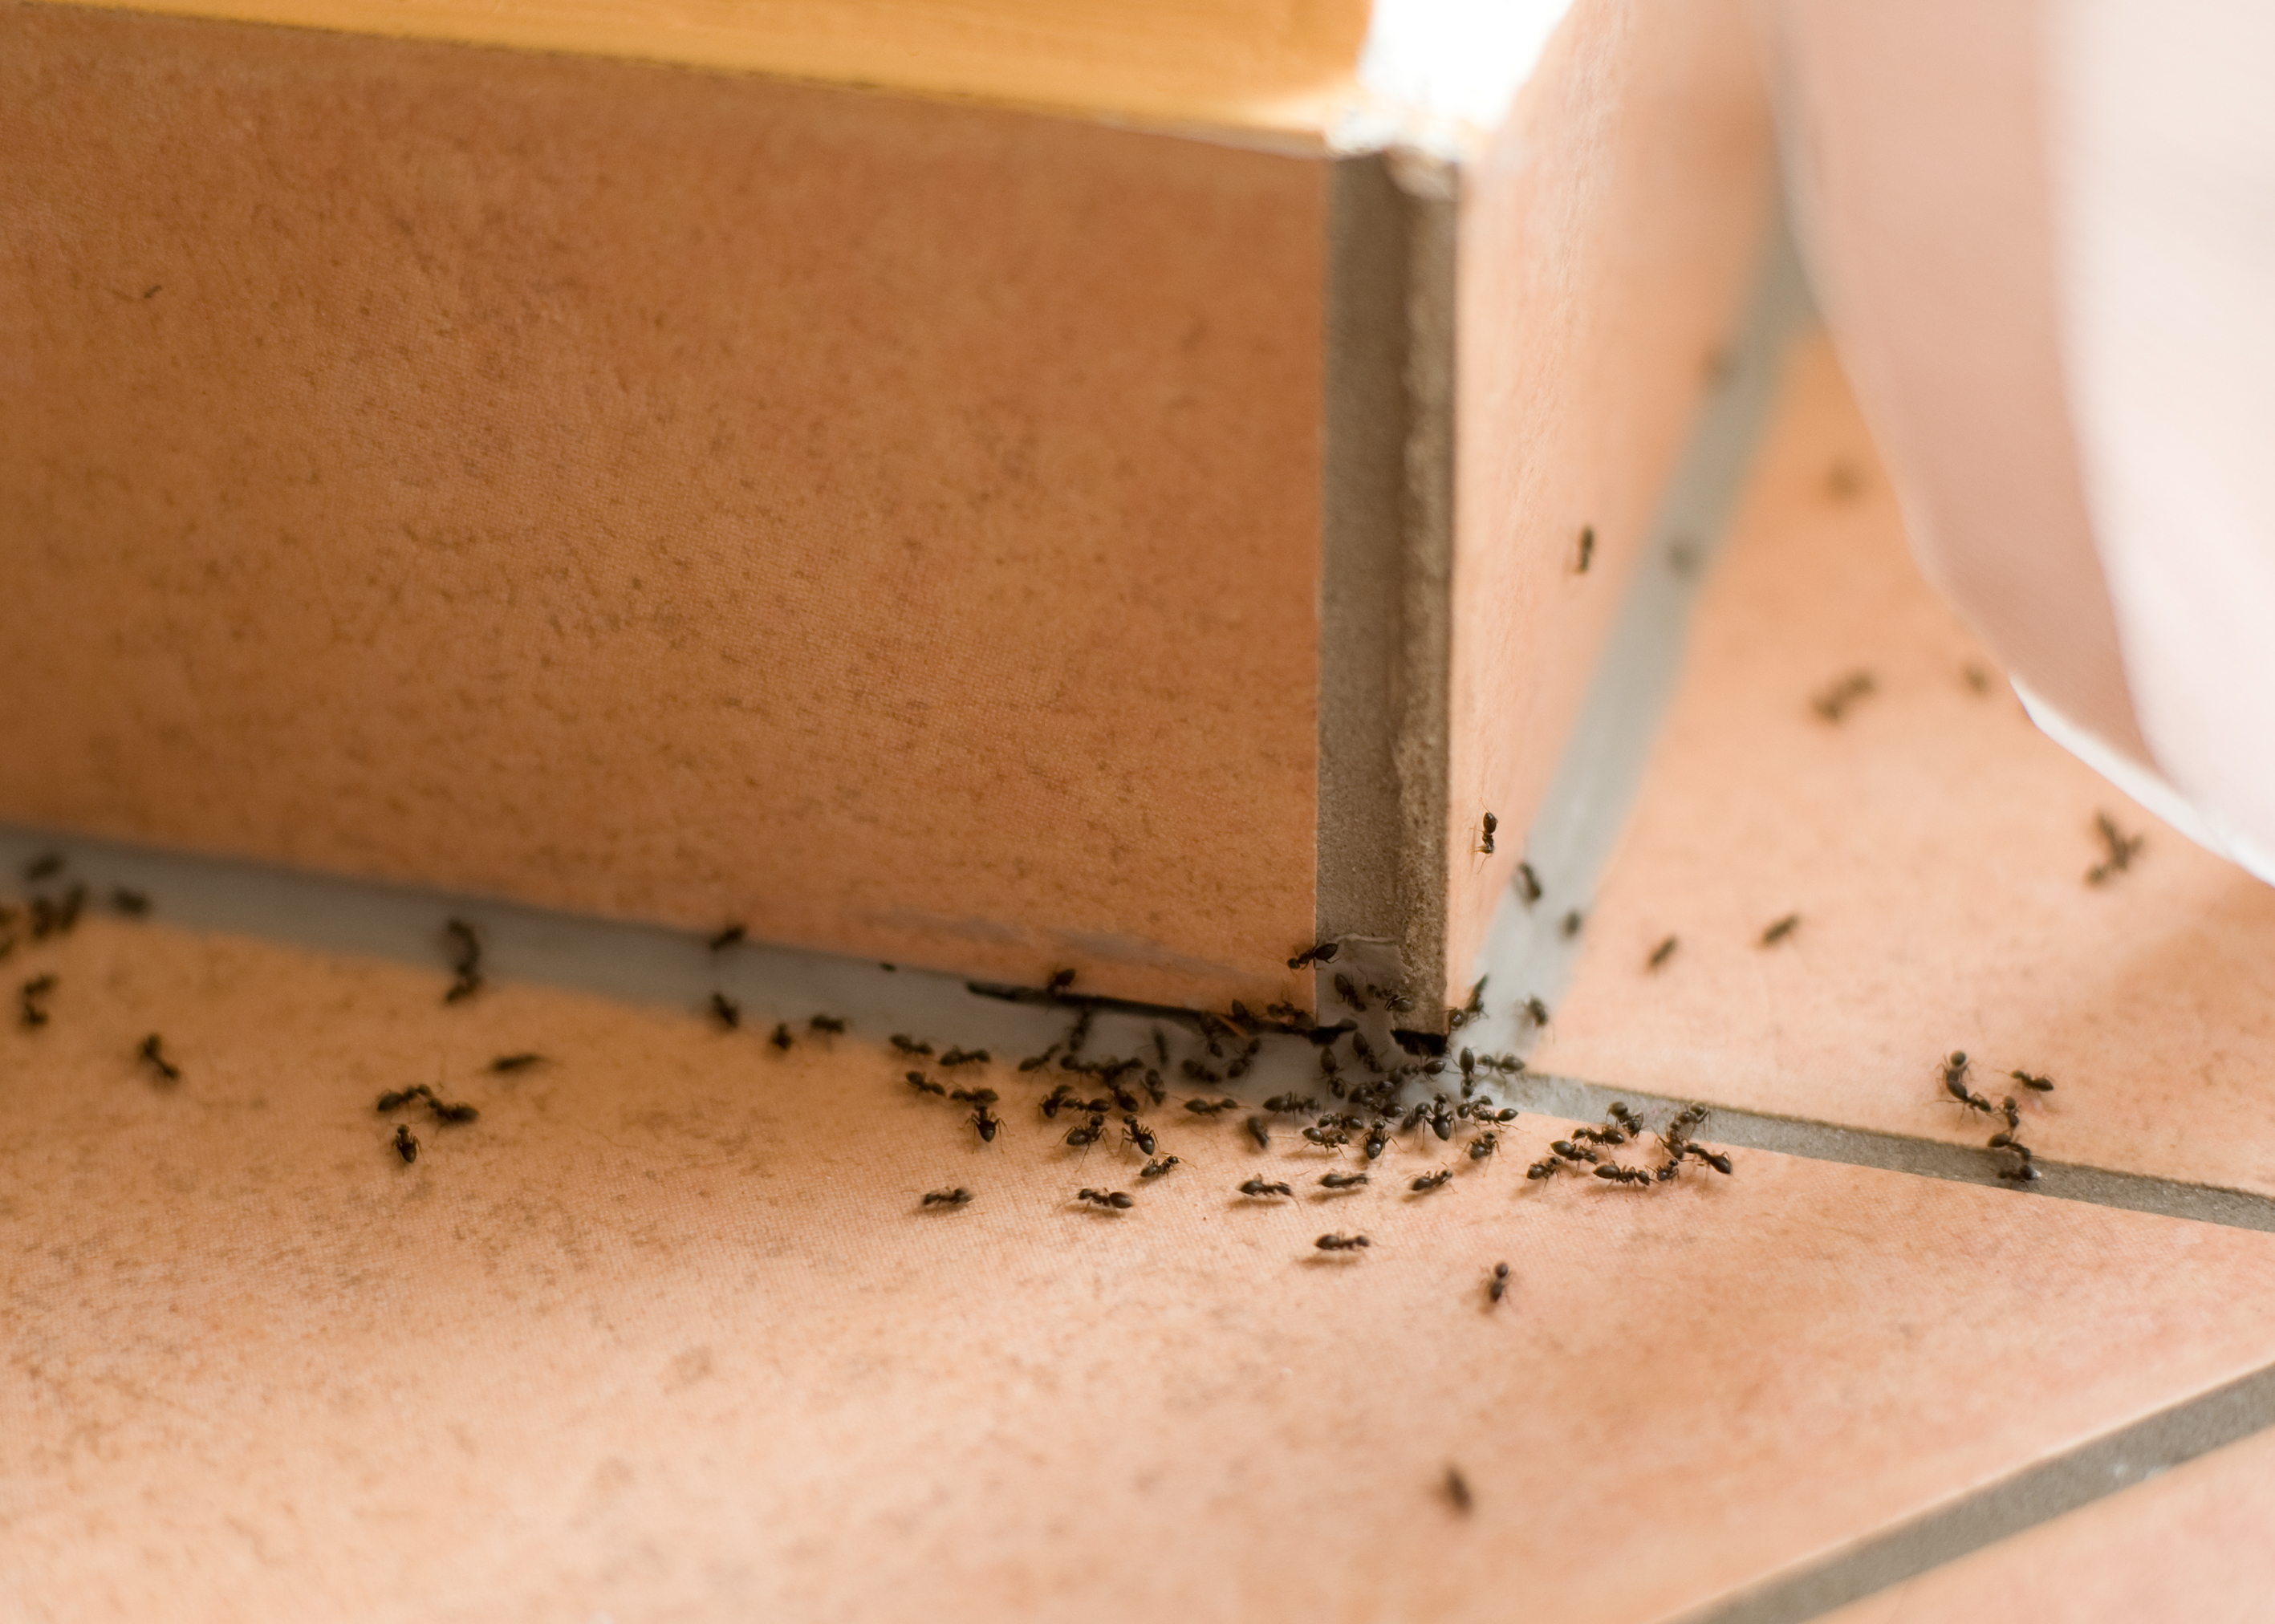 Ant Hot Spots You Should Know